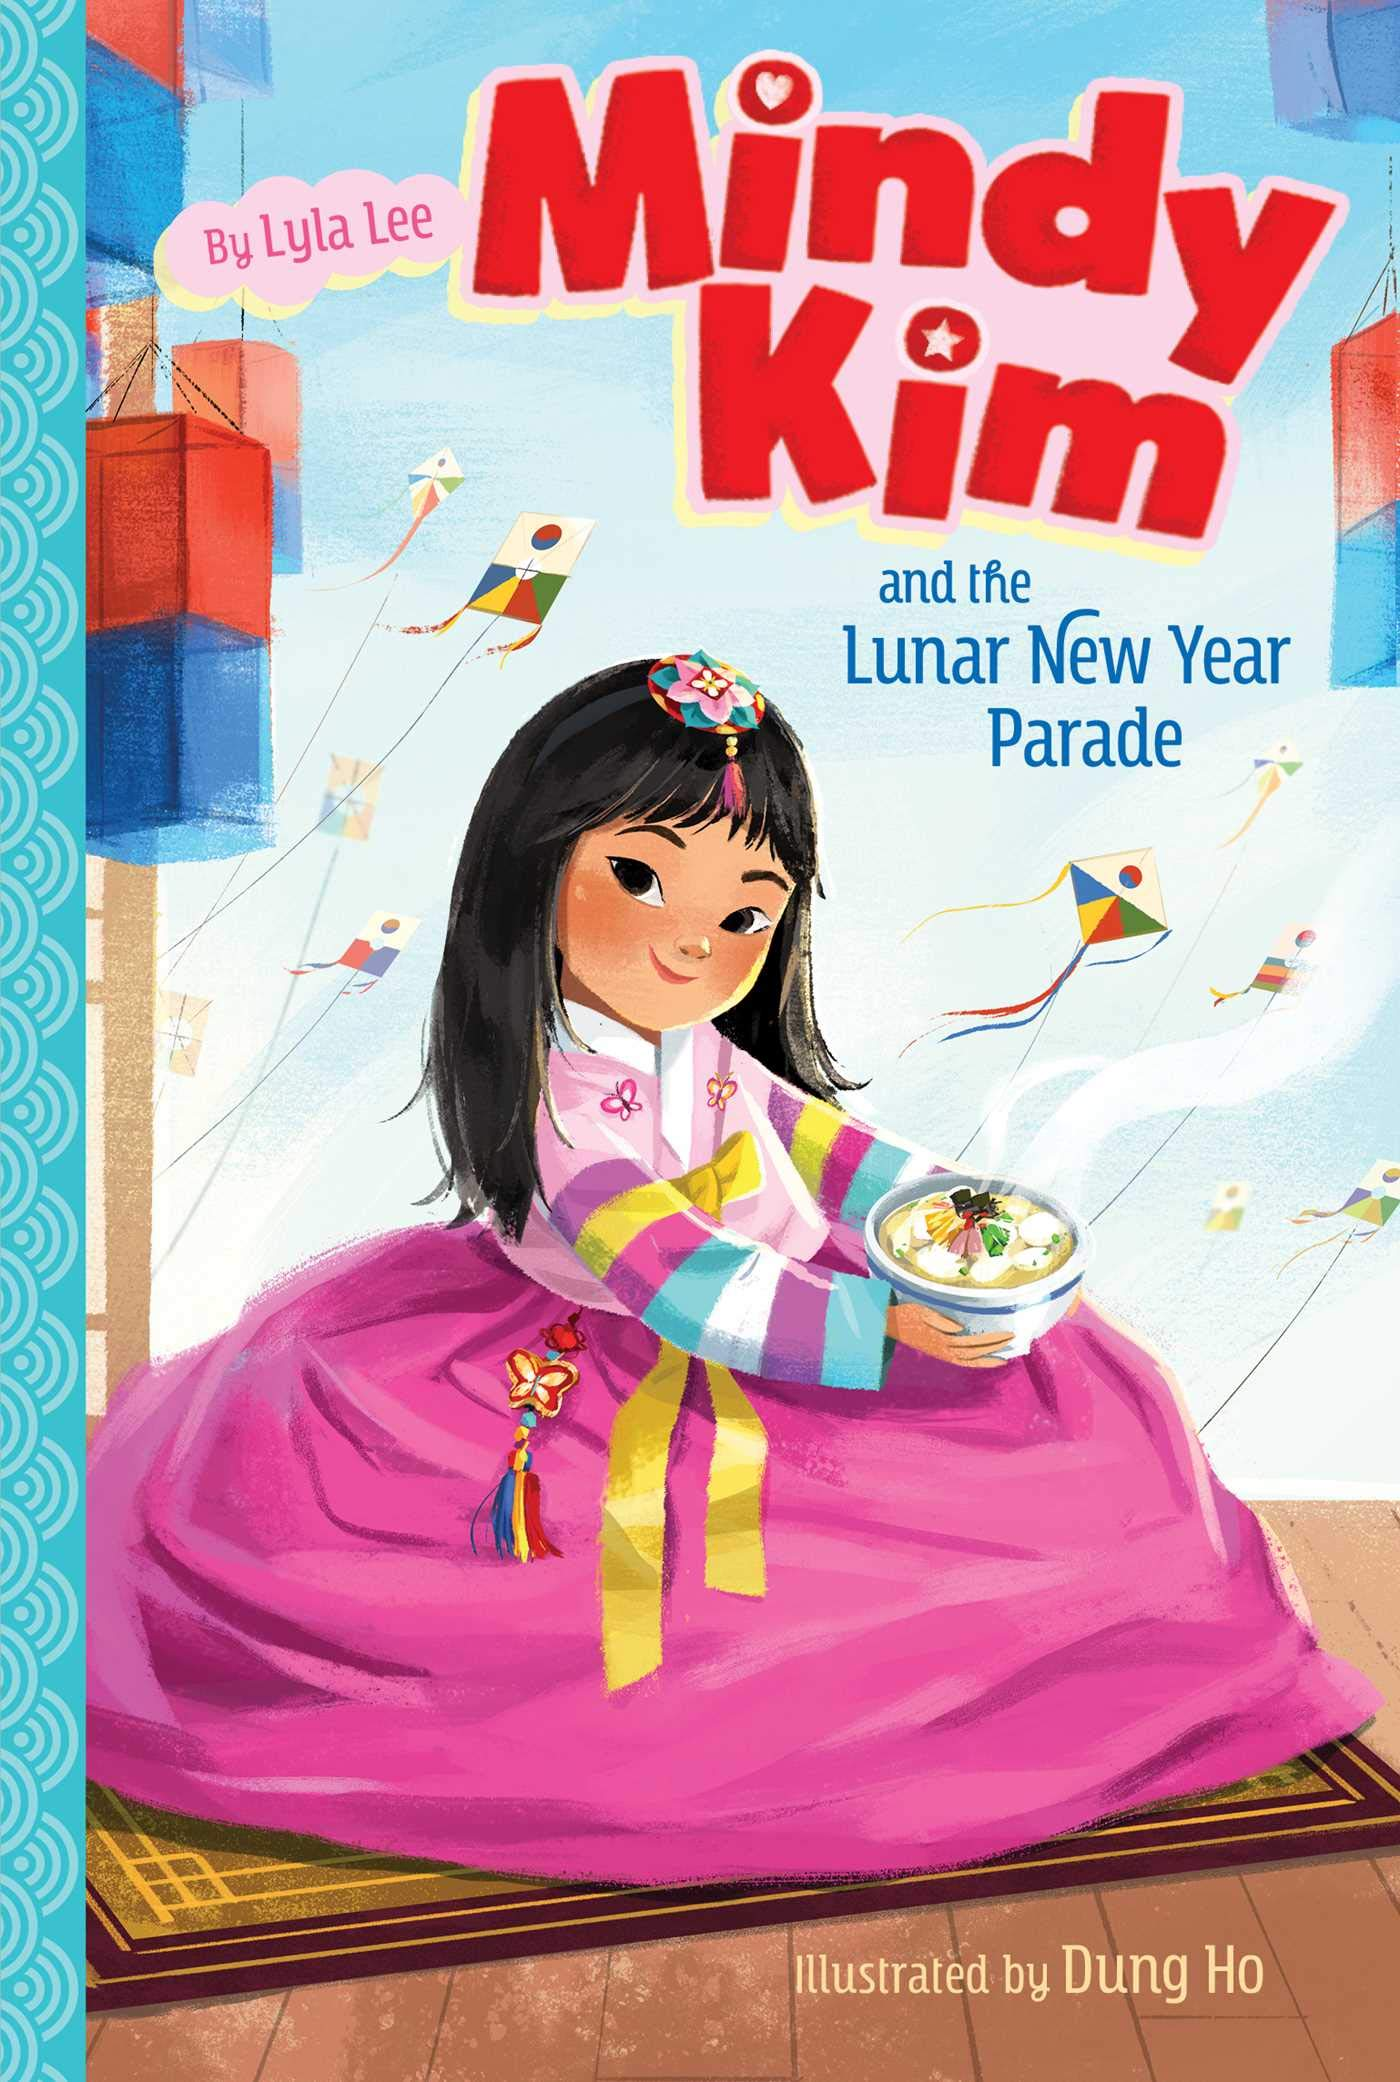 Mindy Kim and the Lunar New Year Parade (Book 2)